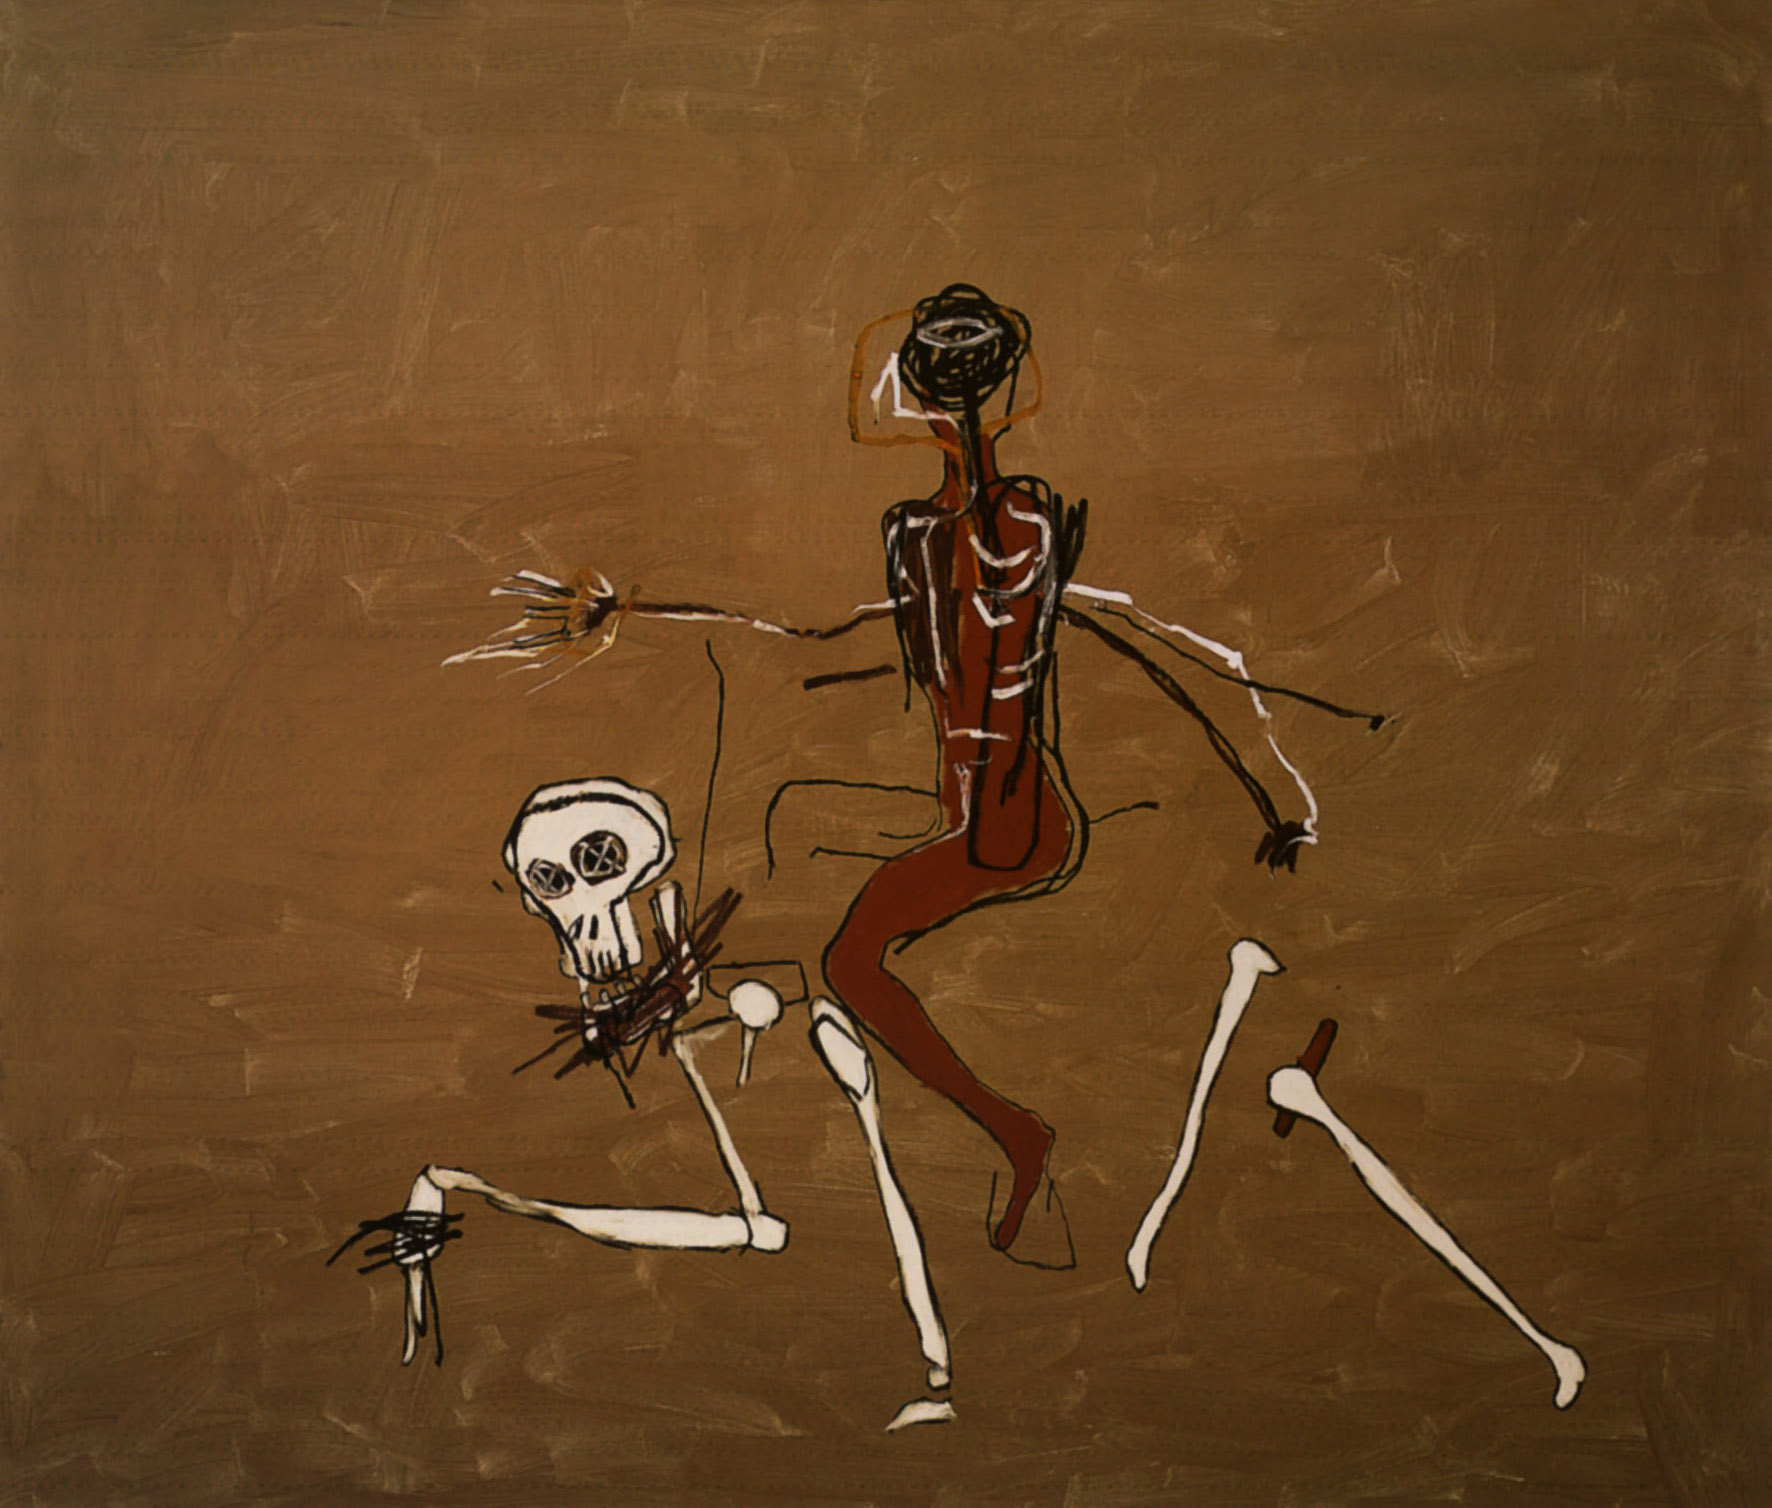 Basquiat. Riding with Death, 1988